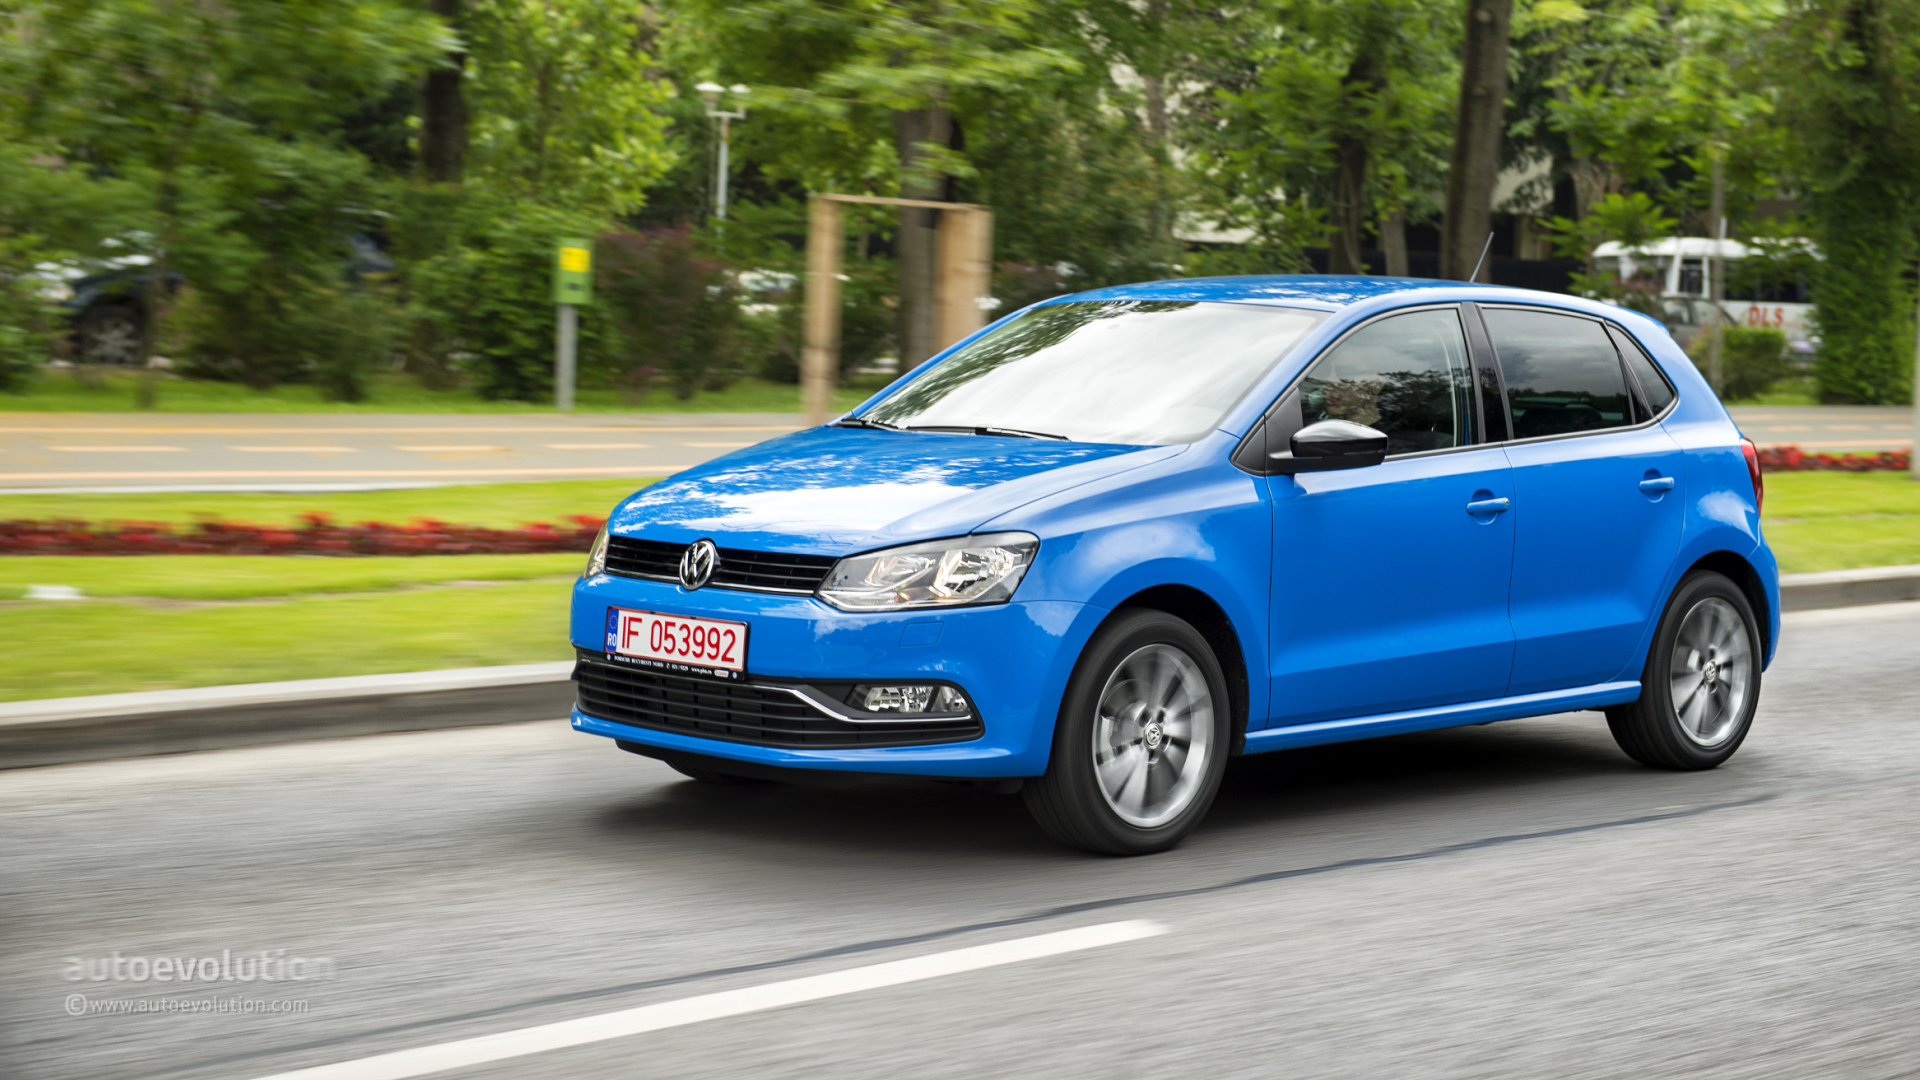 Volkswagen Polo 1.2 2014 photo - 1